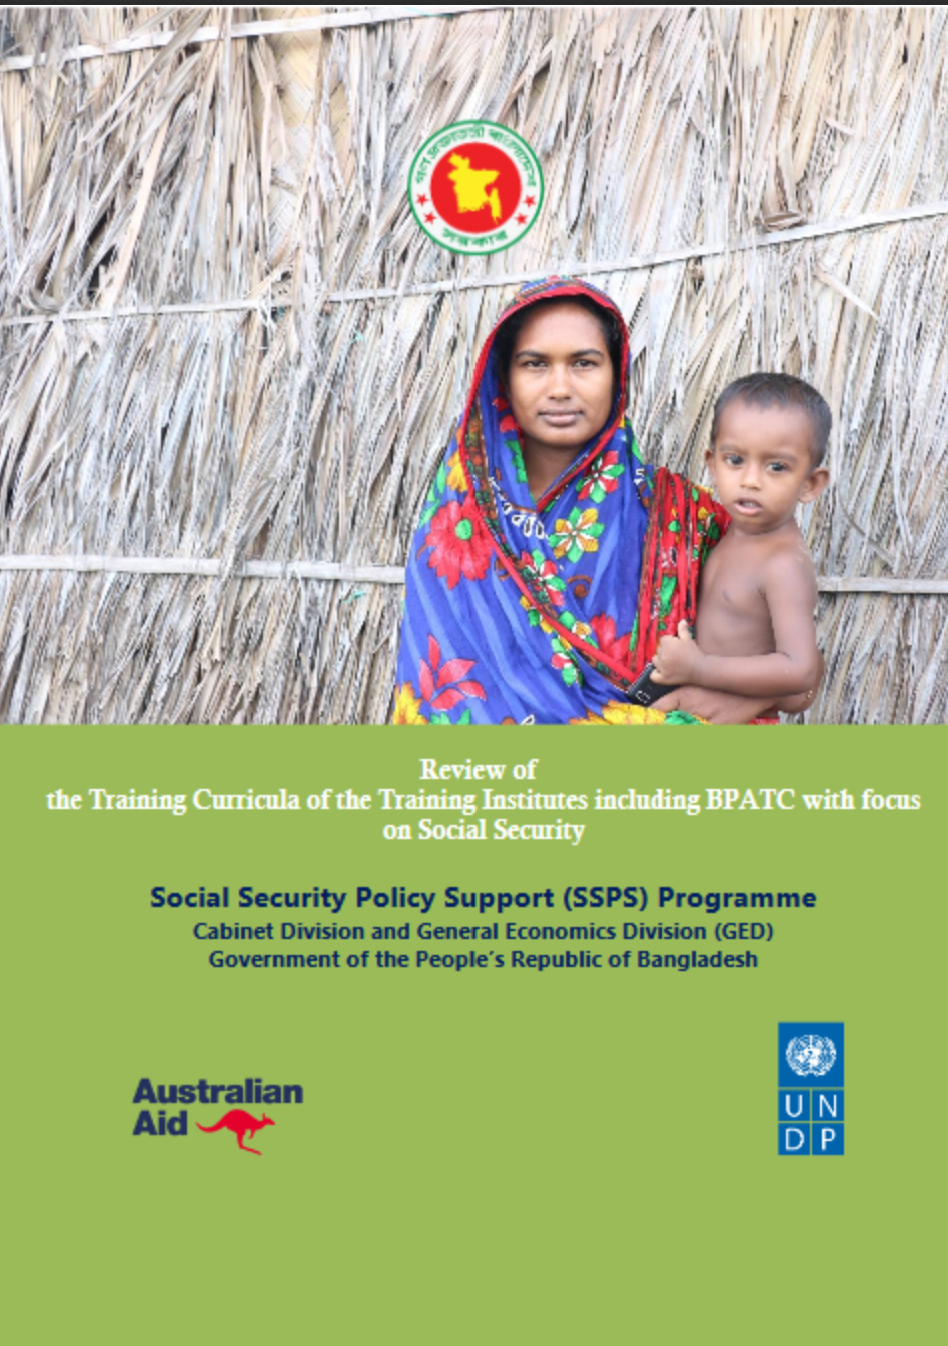 Review of the Training Curricula of the Training Institutes including BPATC with focus on Social Security